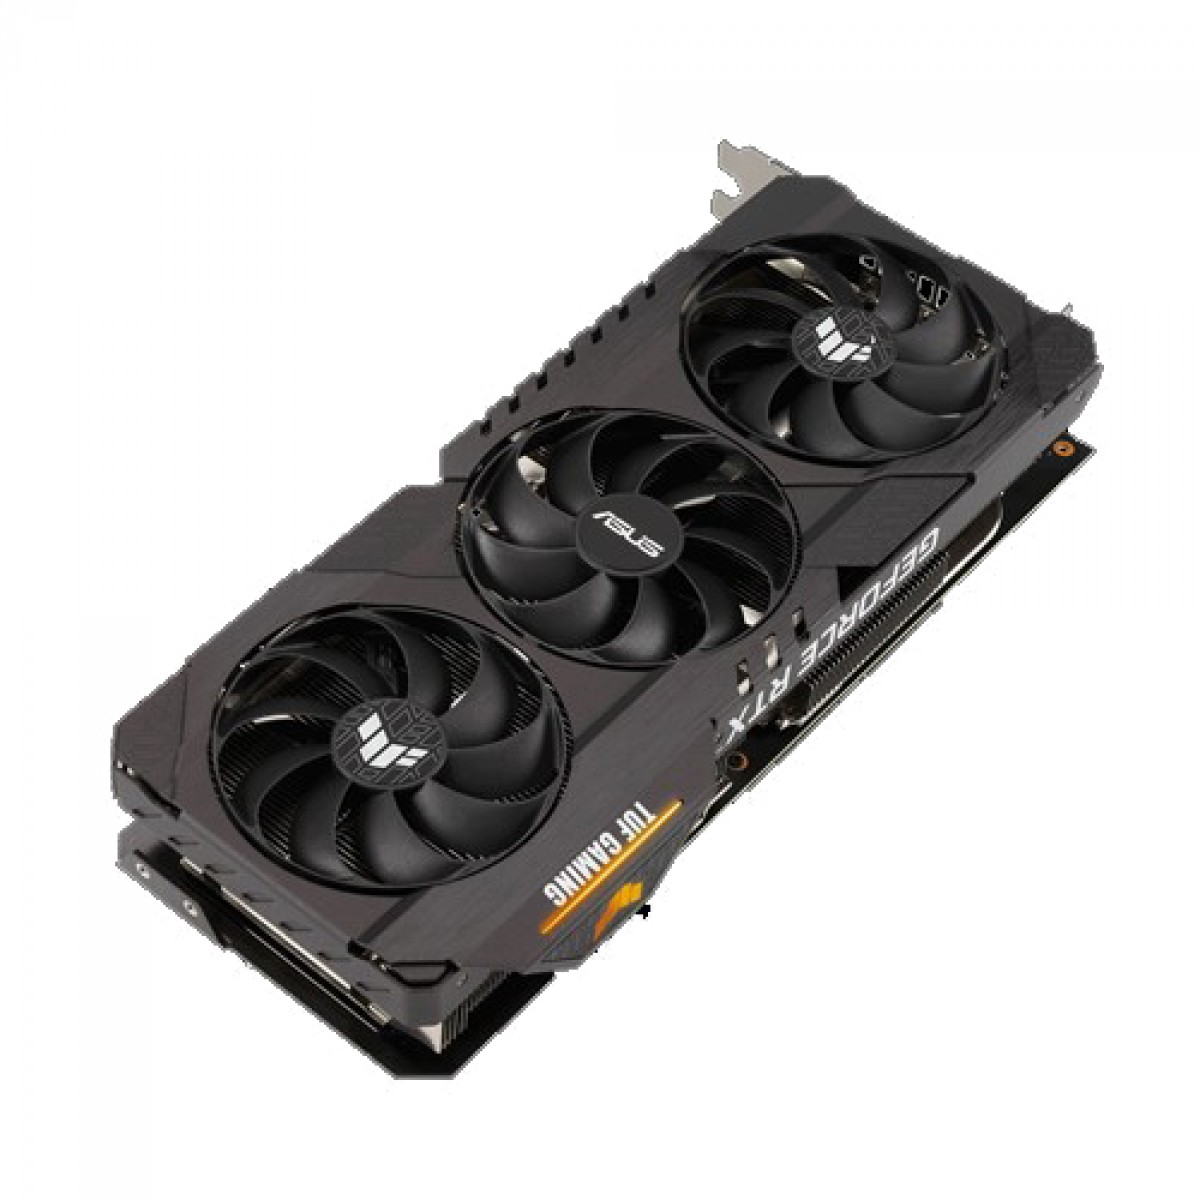 Placa de Vídeo Asus, TUF, Geforce, RTX 3080, 10GB, GDDR6X, 320bit, TUF-RTX3080-10G-GAMING